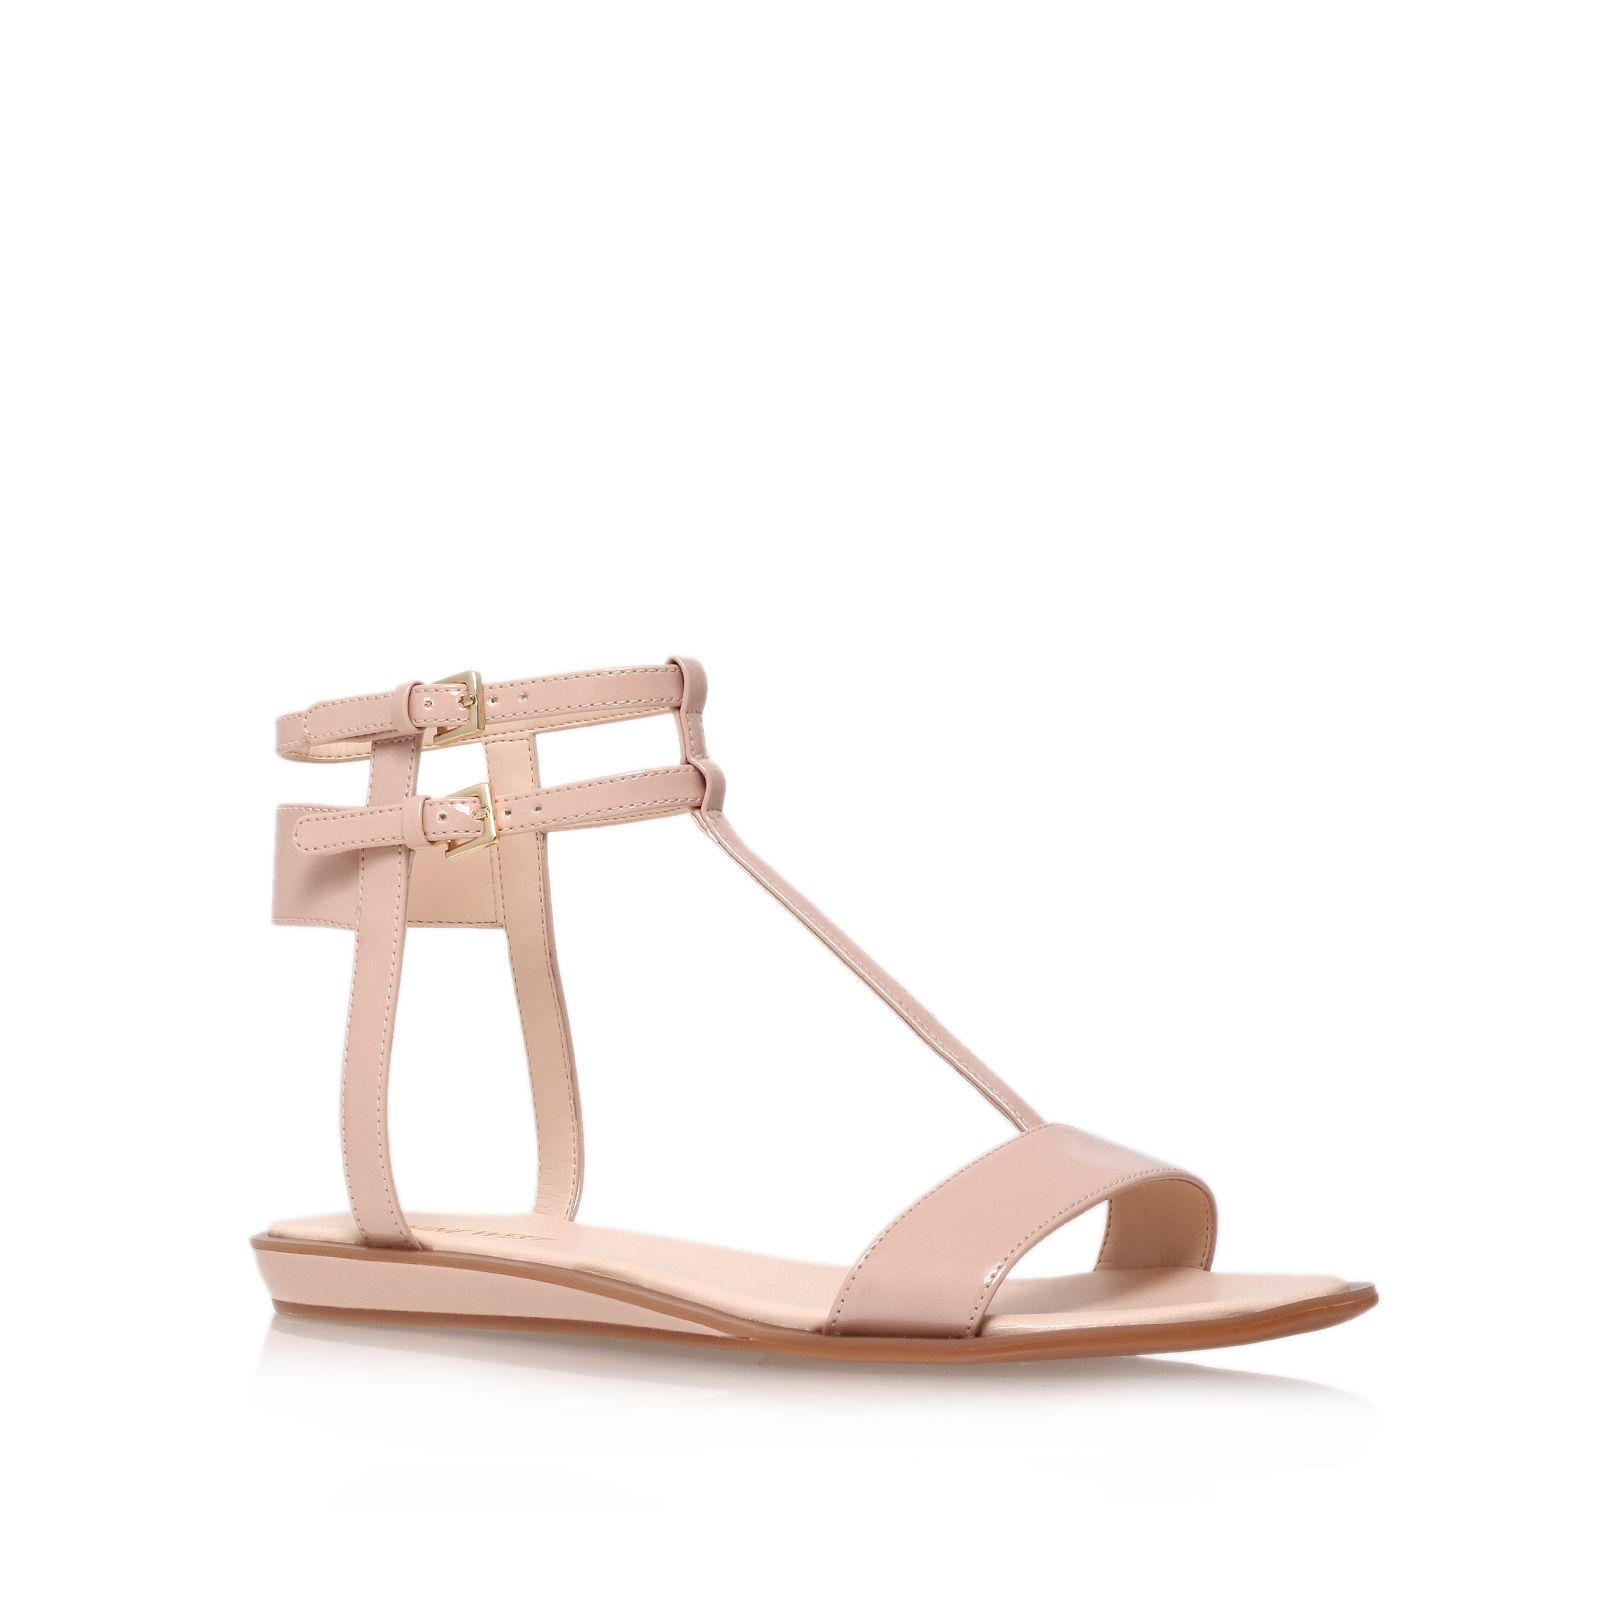 Veronique3 flat sandals